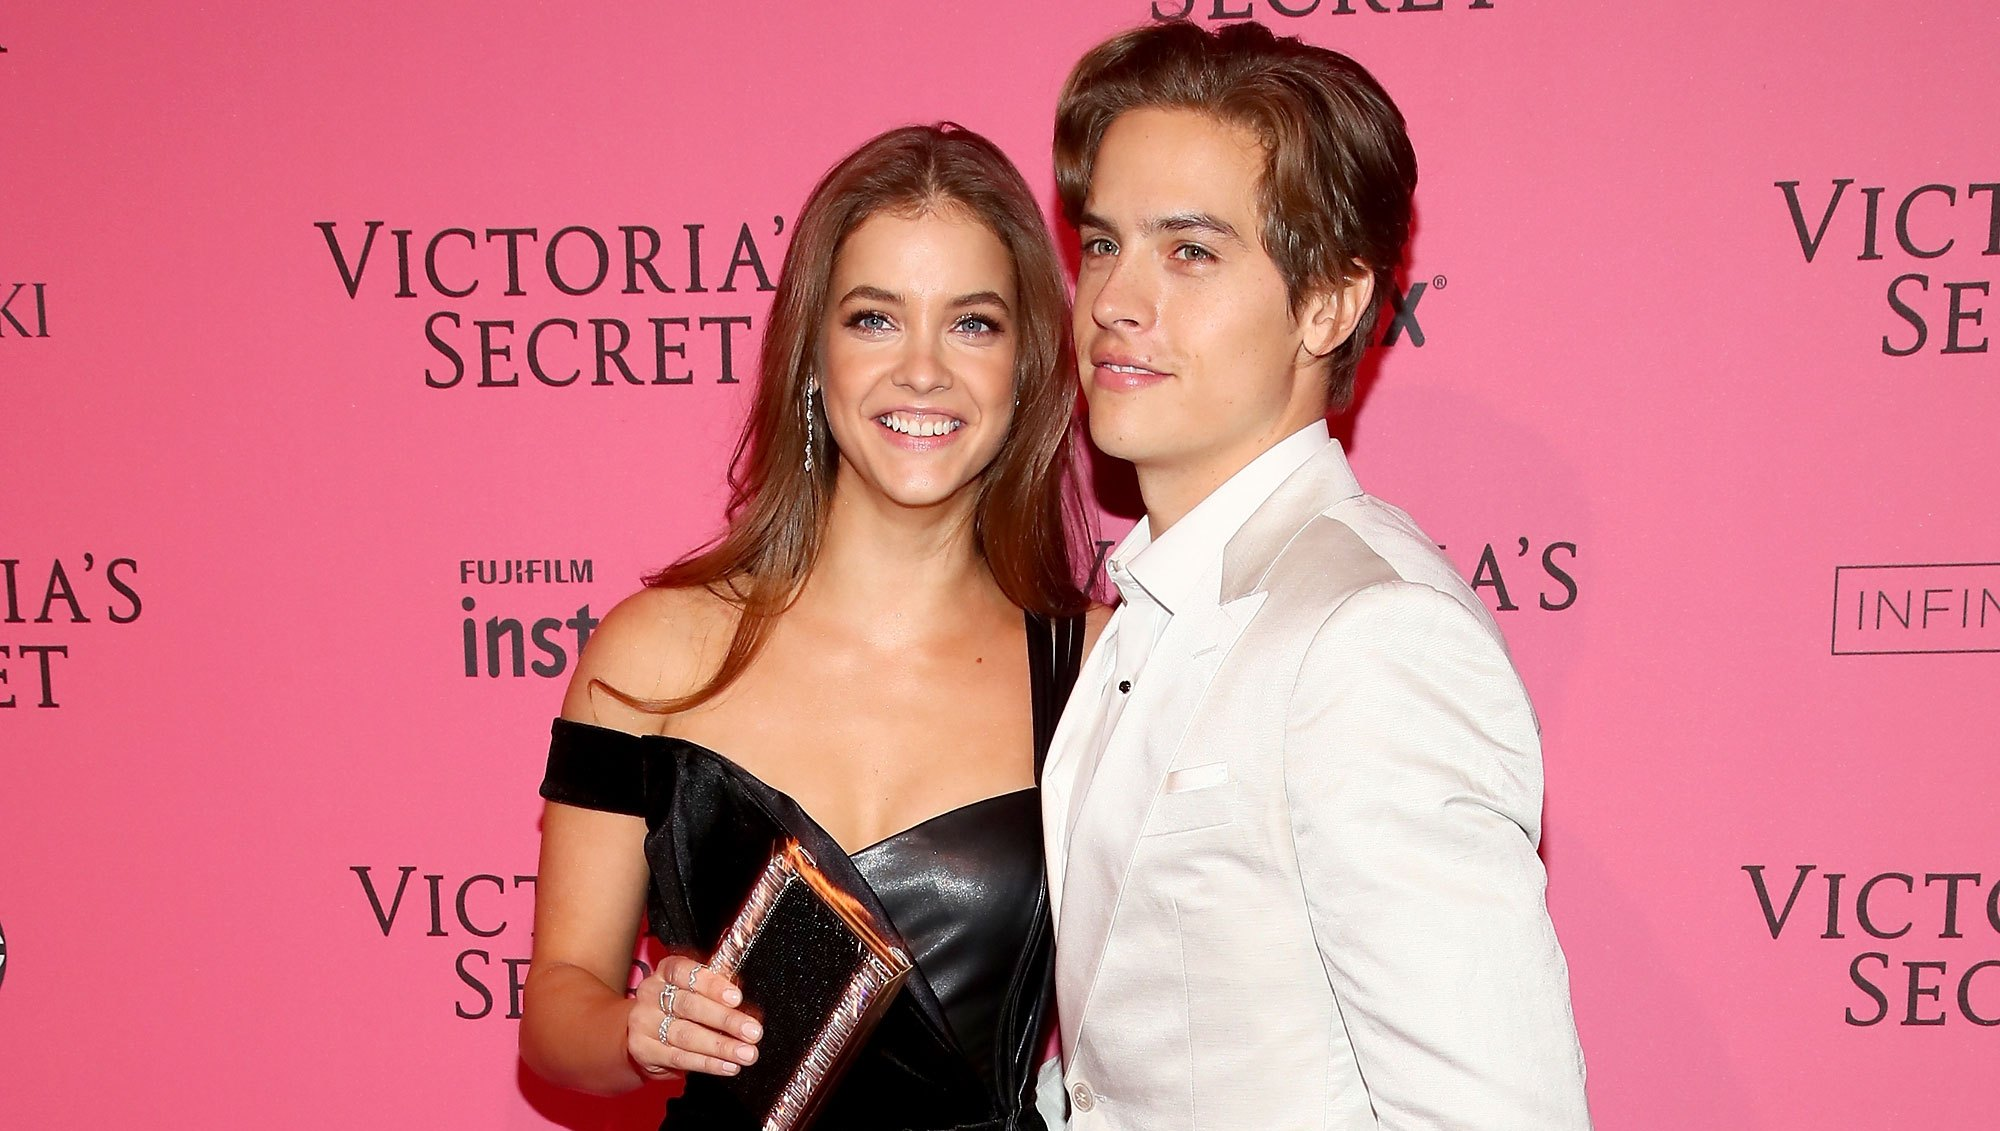 Dylan Sprouse Brings Barbara Palvin Fast Food At VS Show